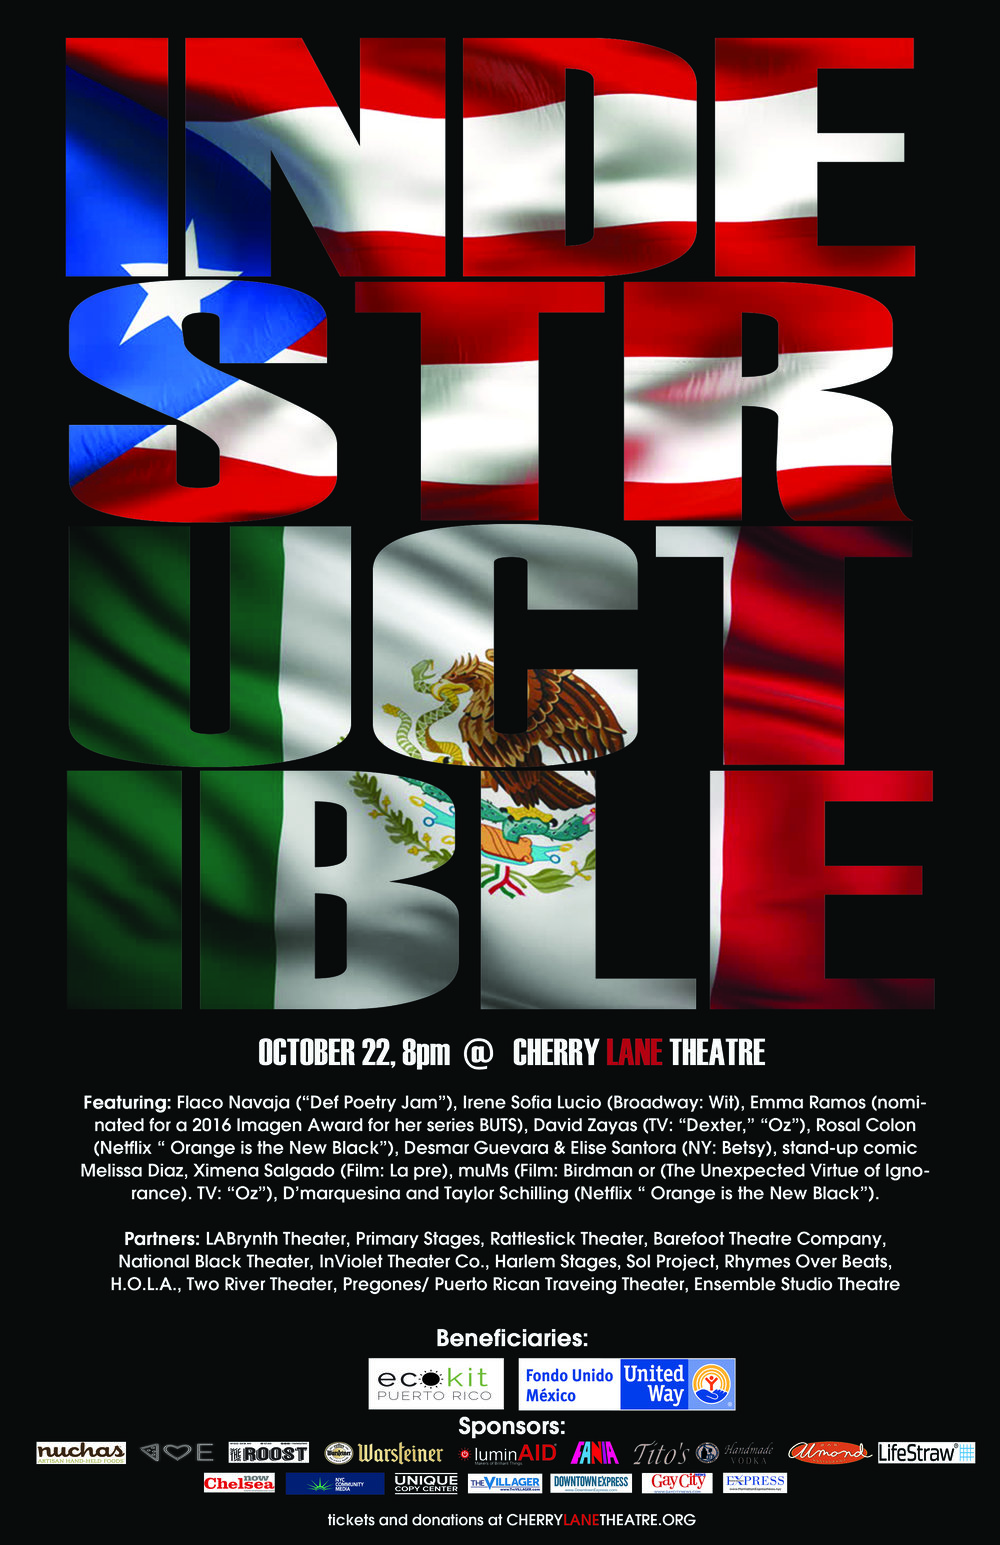 Theater artists - Acting for Puerto Rico